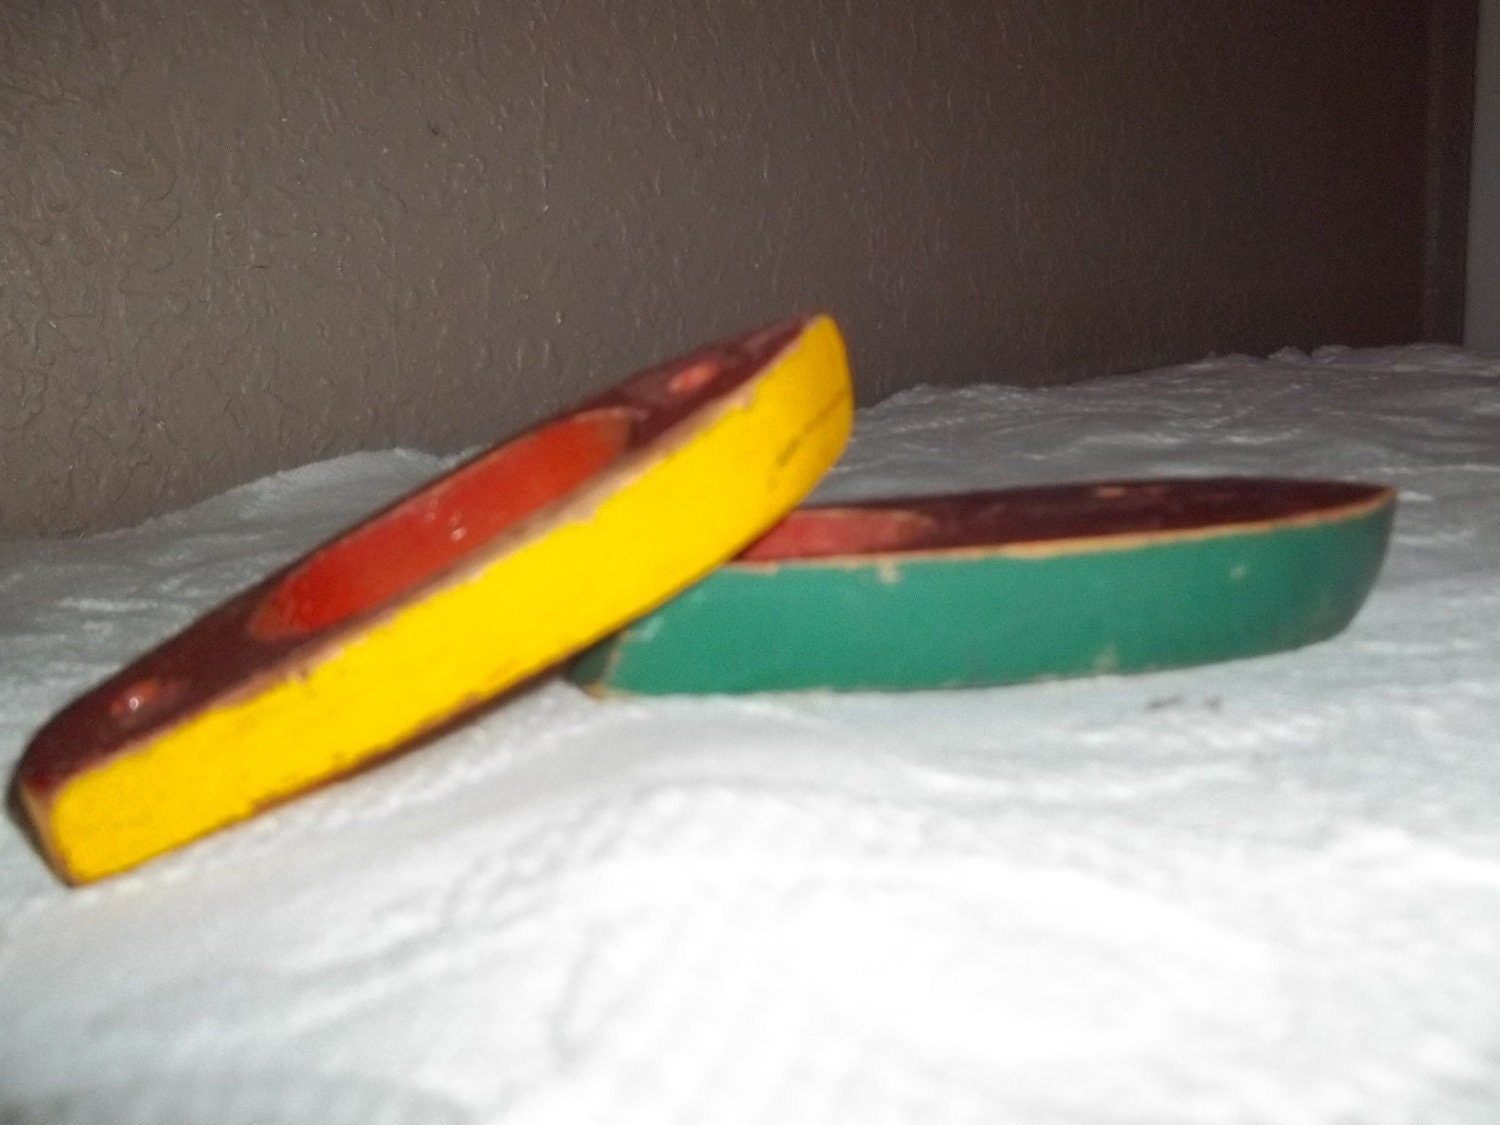 Vintage Wooden Toy Boats Yellow And Green With Red